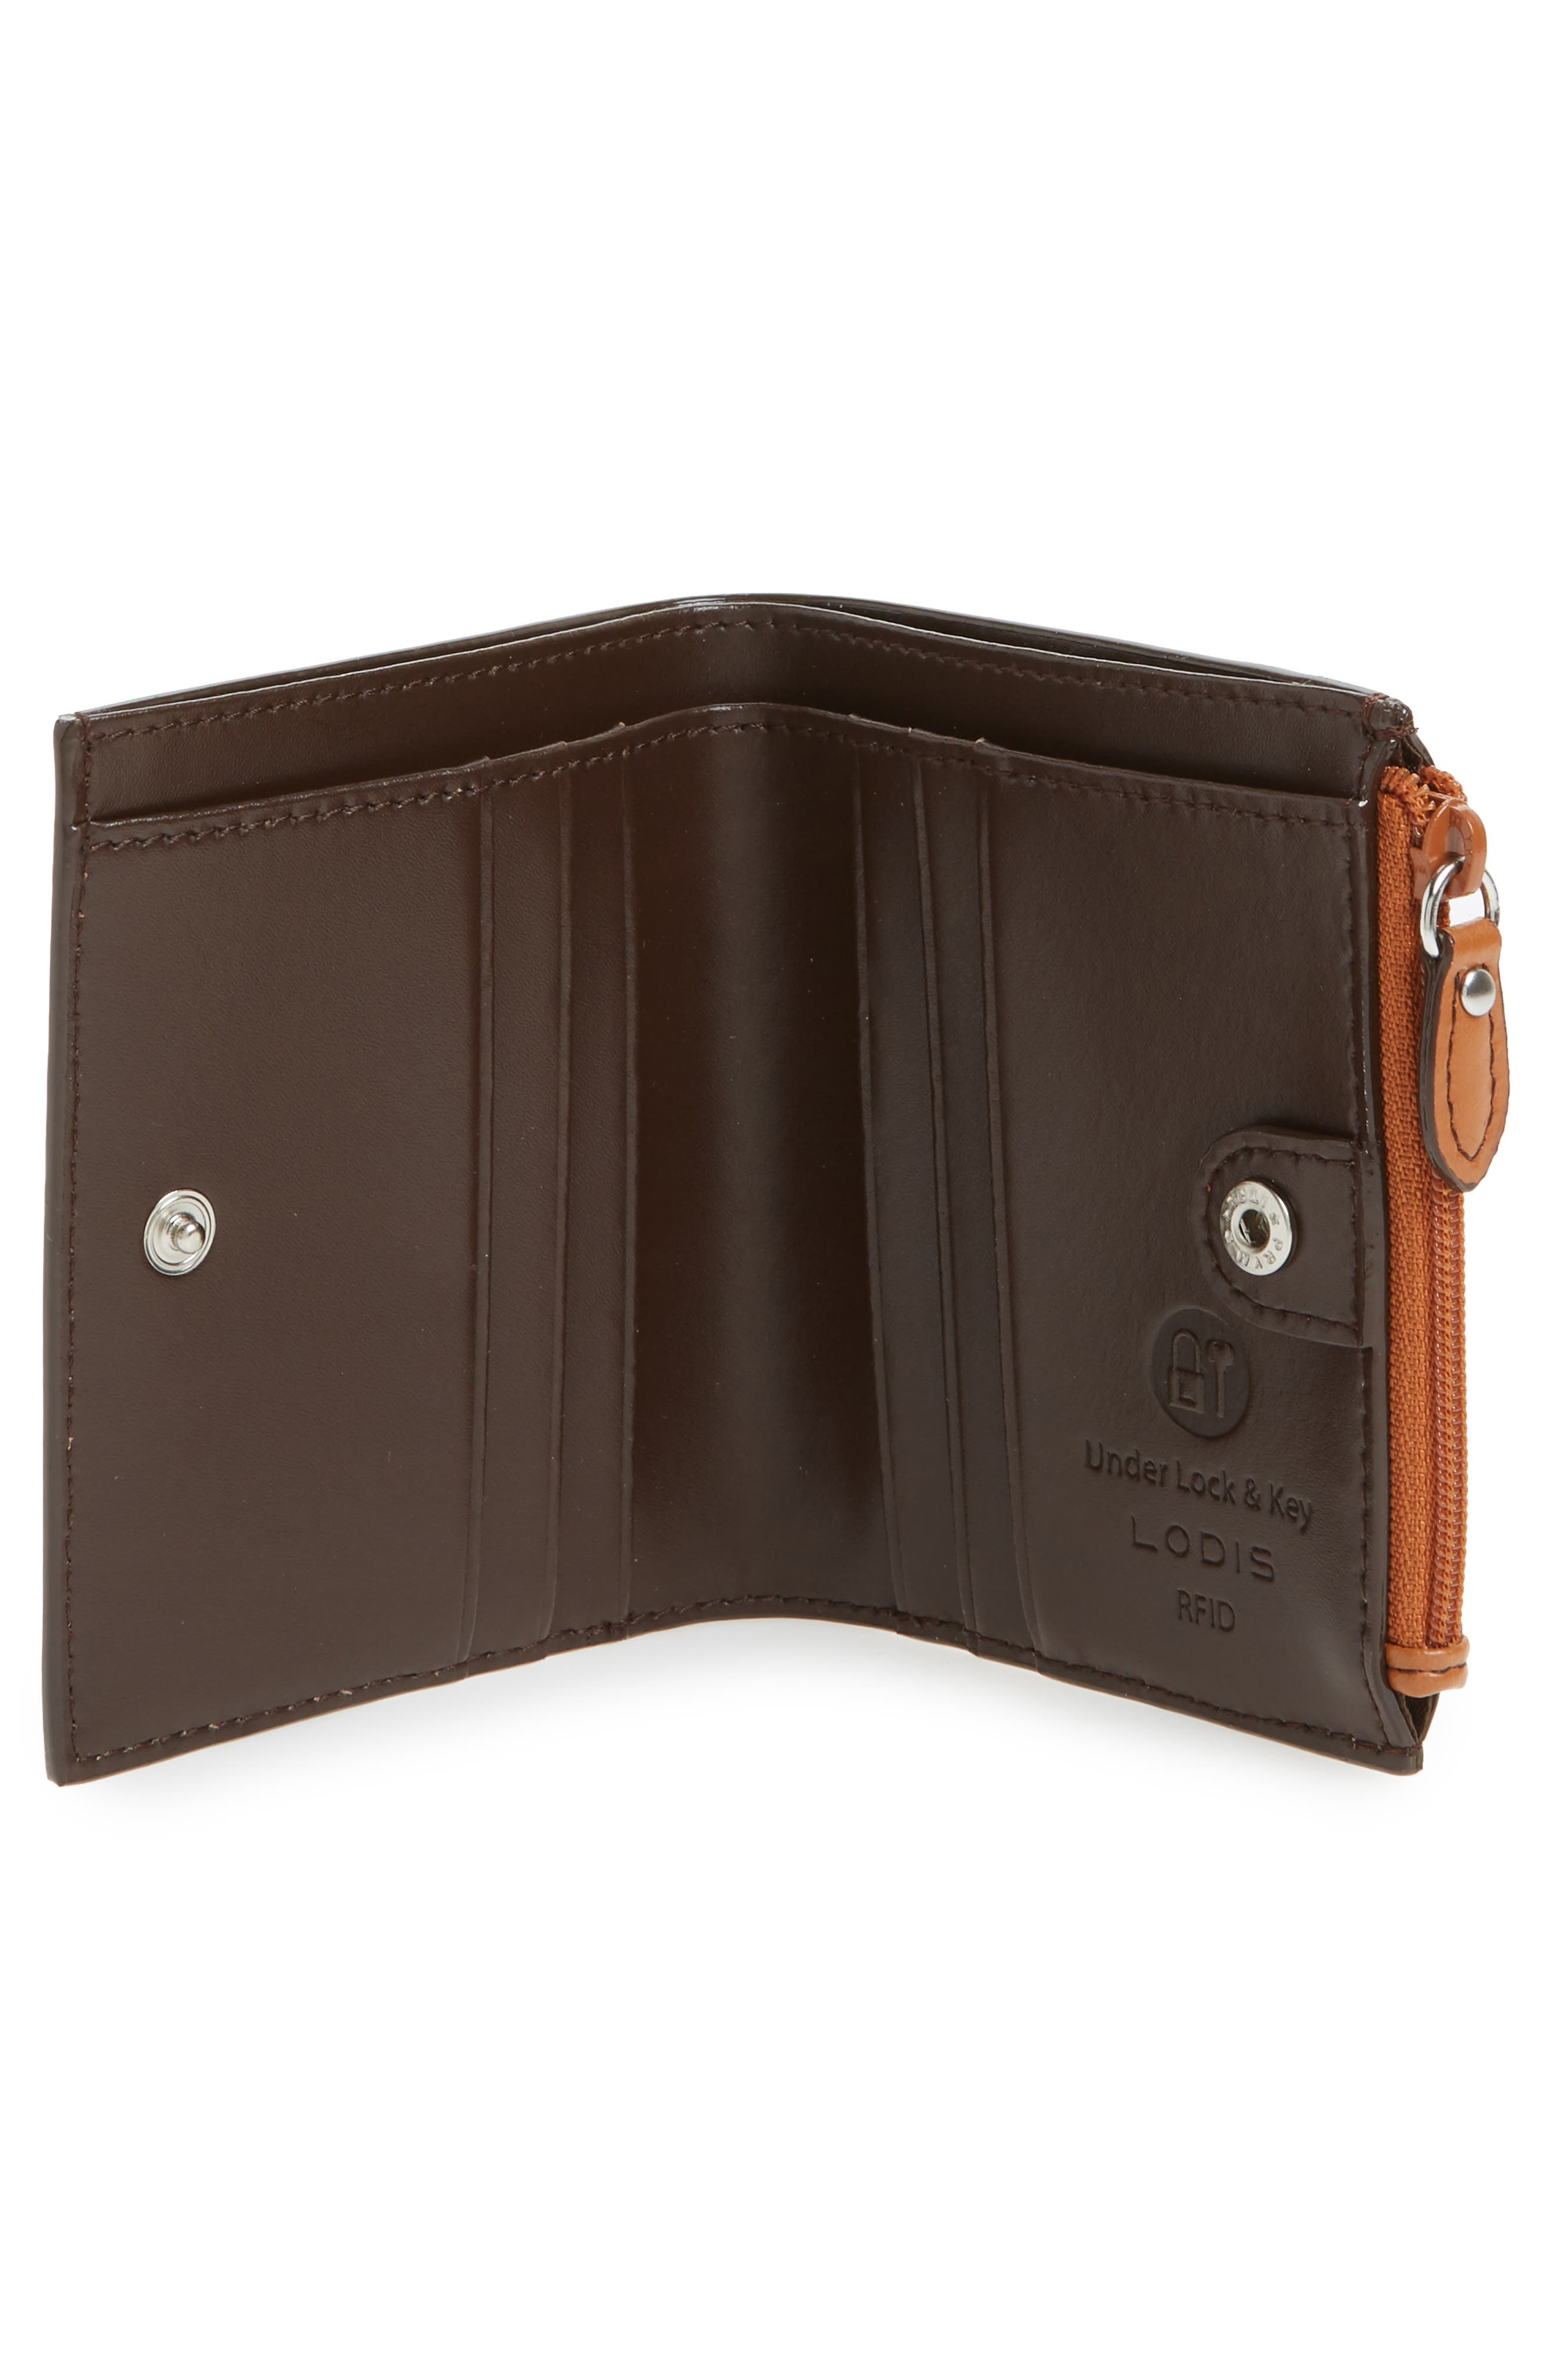 Audrey Under Lock & Key Aldis Leather Wallet,                             Alternate thumbnail 5, color,